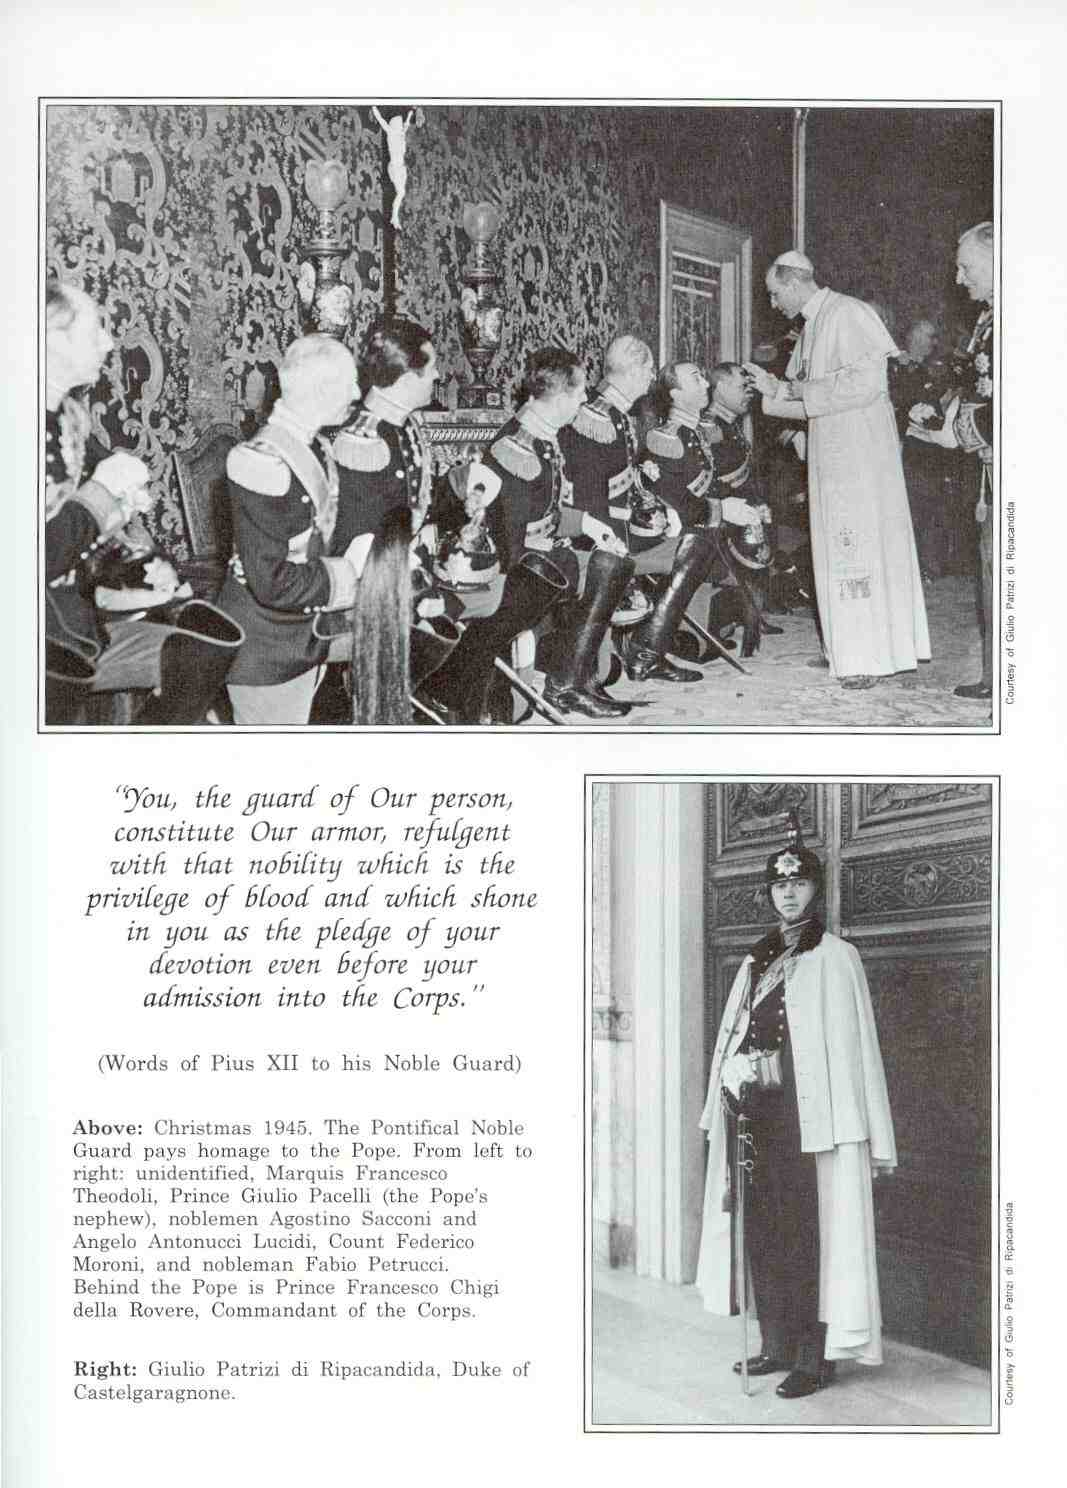 1. POPE PIUS XII AND HIS NOBLE GUARDS